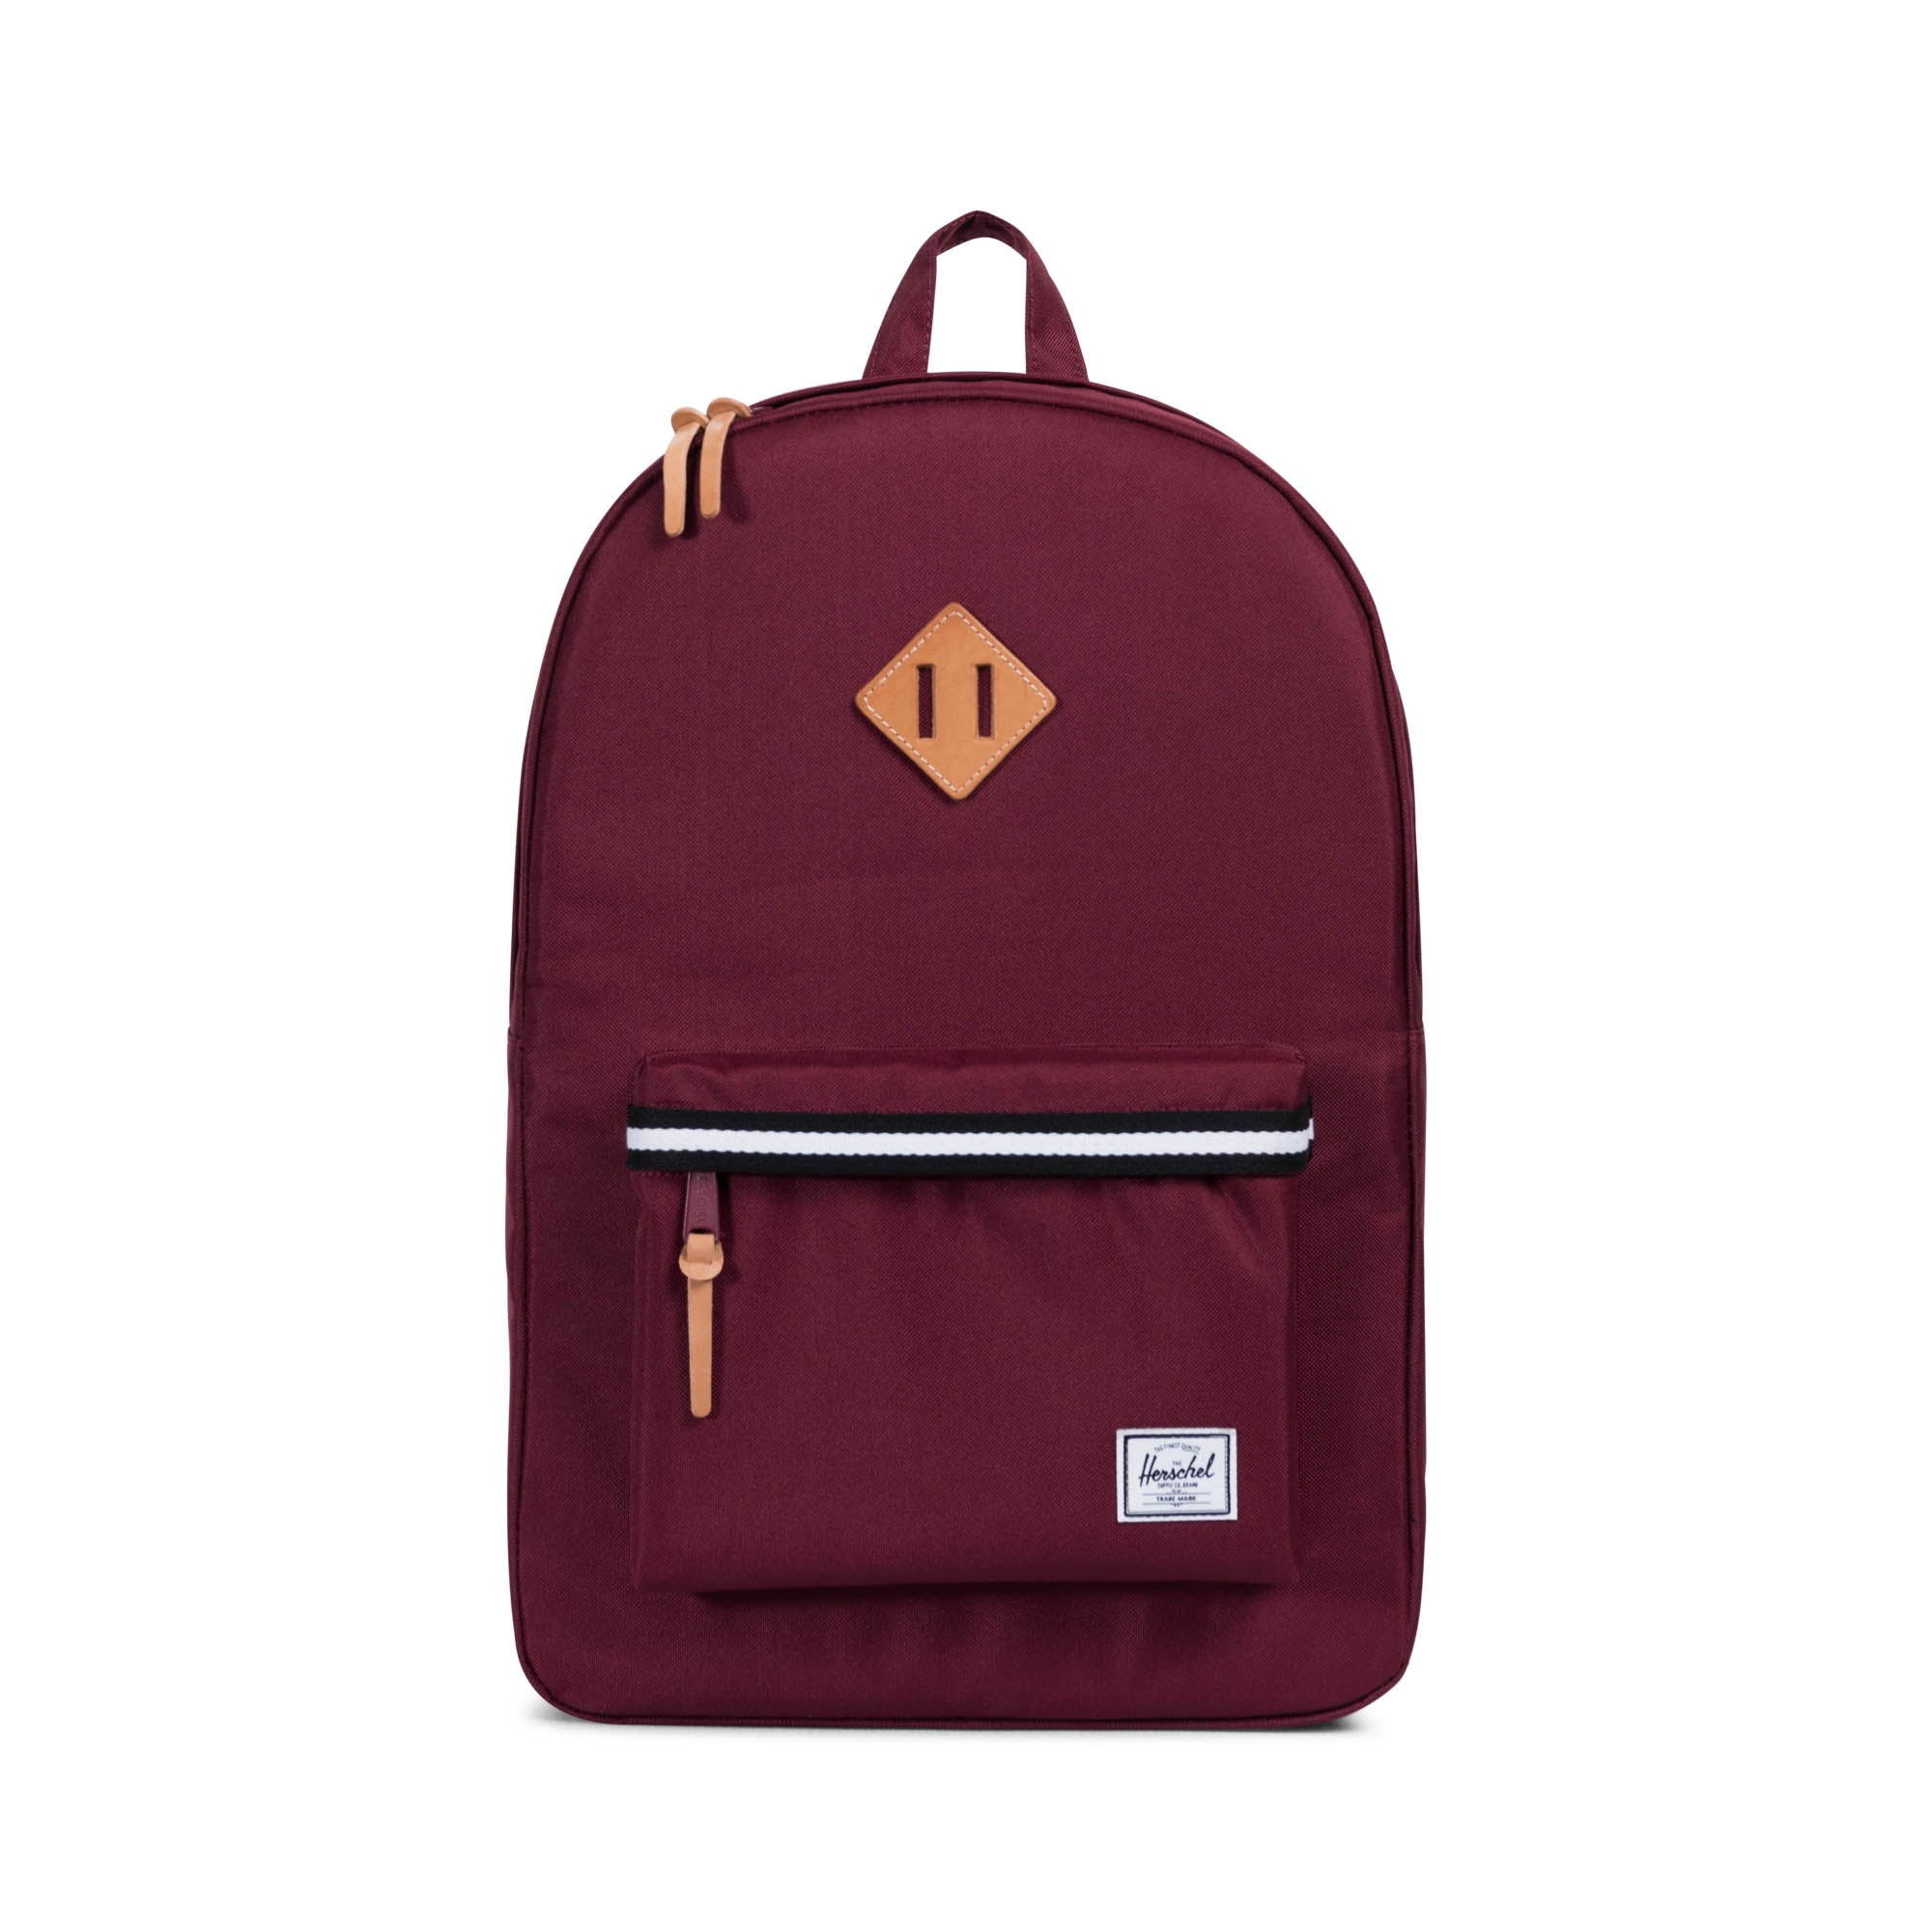 f160b83f84b Herschel Offset Collection Heritage Backpack - Windsor Wine Leather ...